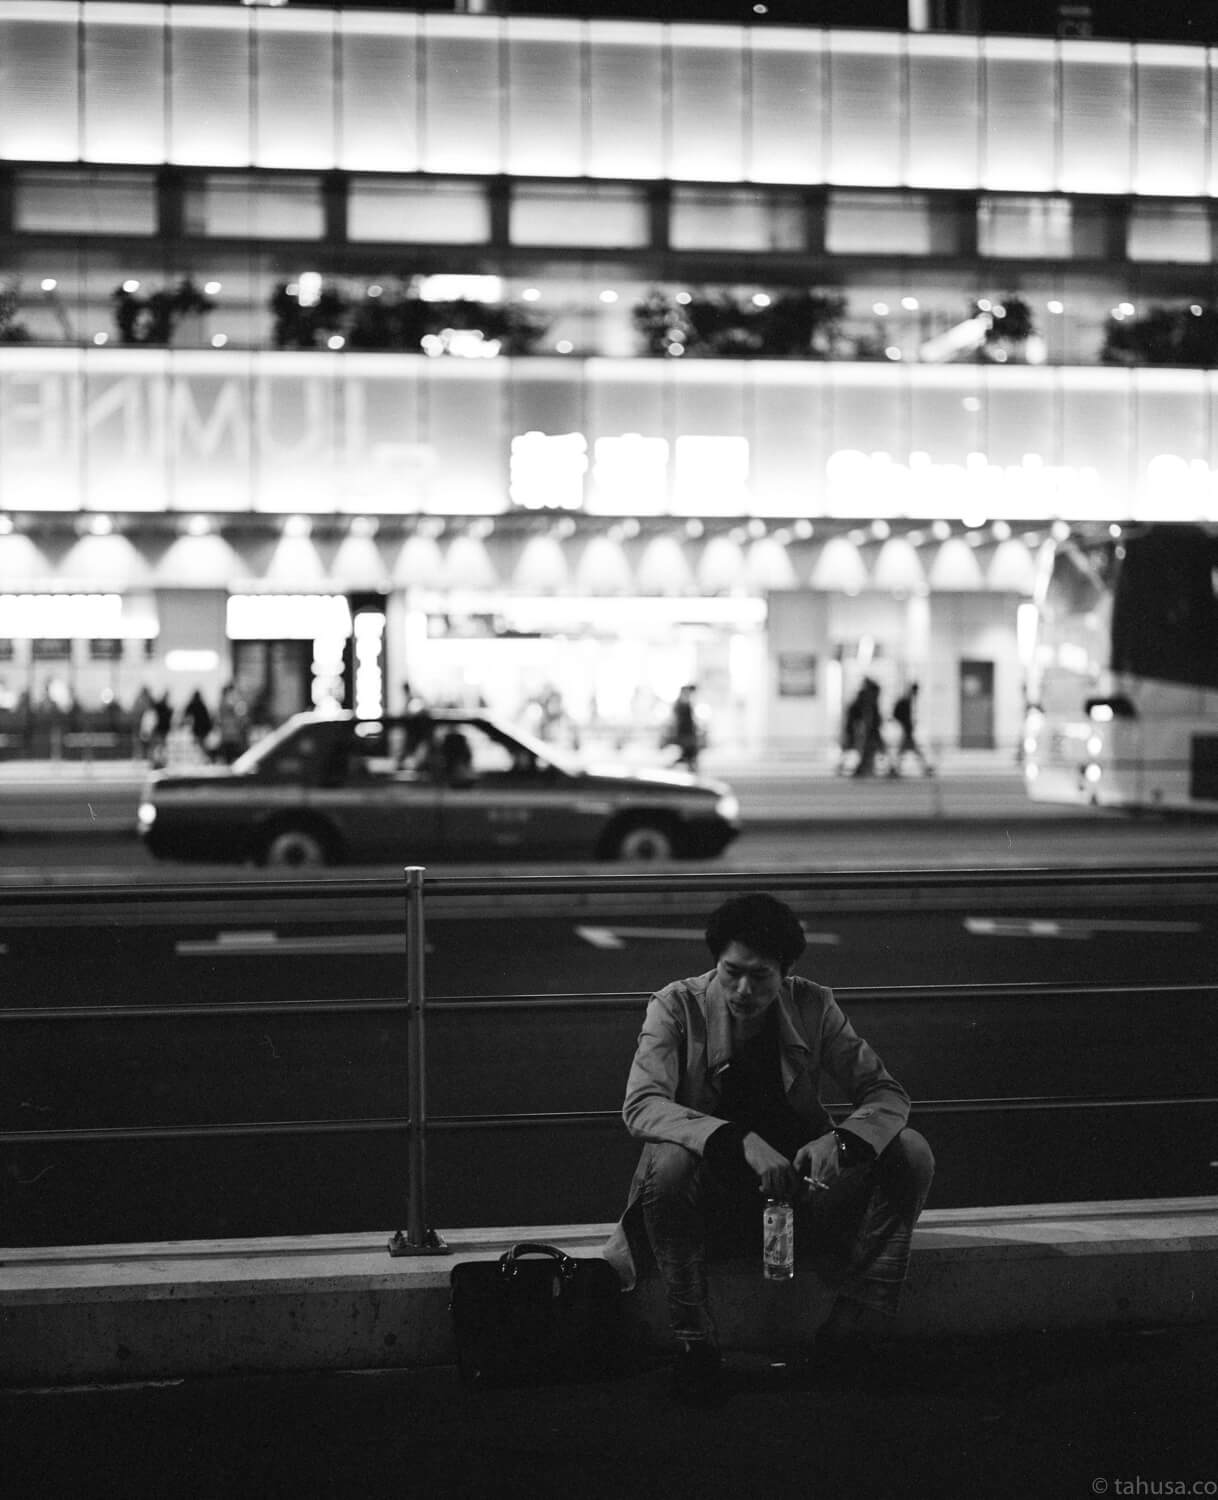 lonely-guy-sitting-on-bench-outside-JR-station-in-shinjuku-district-japan-street-tokyo-streetphotography-blackandwhite-BW-B&W-japanese-travel-with-pentax-67-6x7-mediumformat-medium-format-120-Delta-400-Ilford-Film-analog-105mm-f2.4-super-takumar